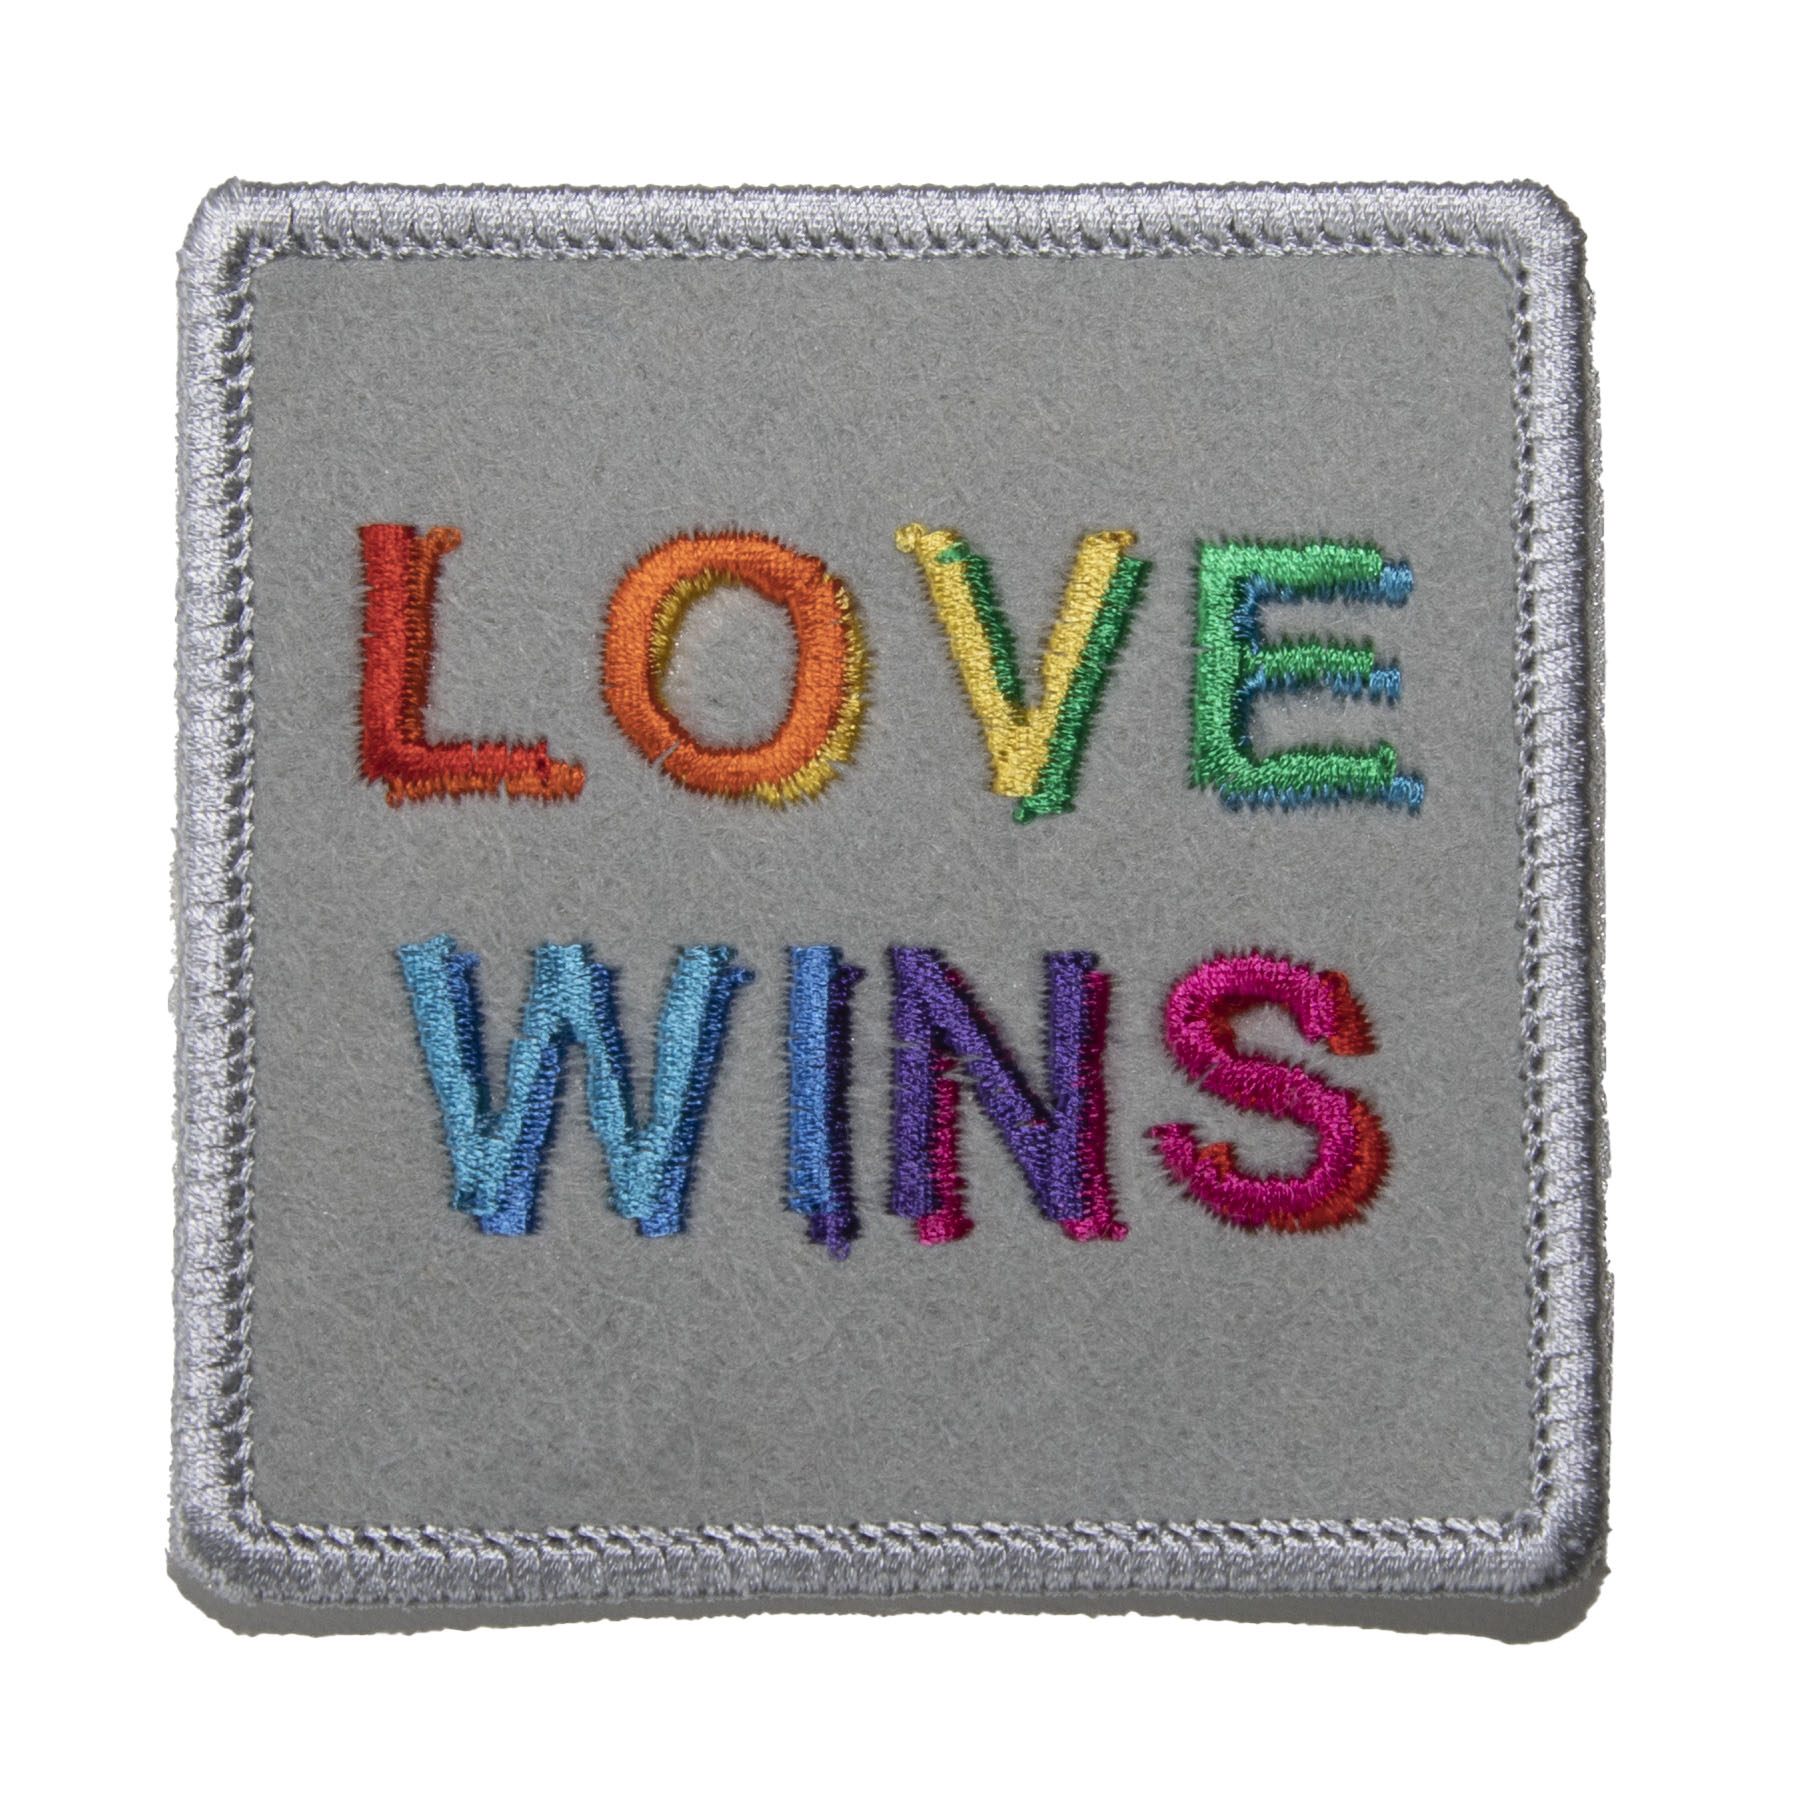 embroidered square patch LOVE WINS in rainbow letters of silver felt background